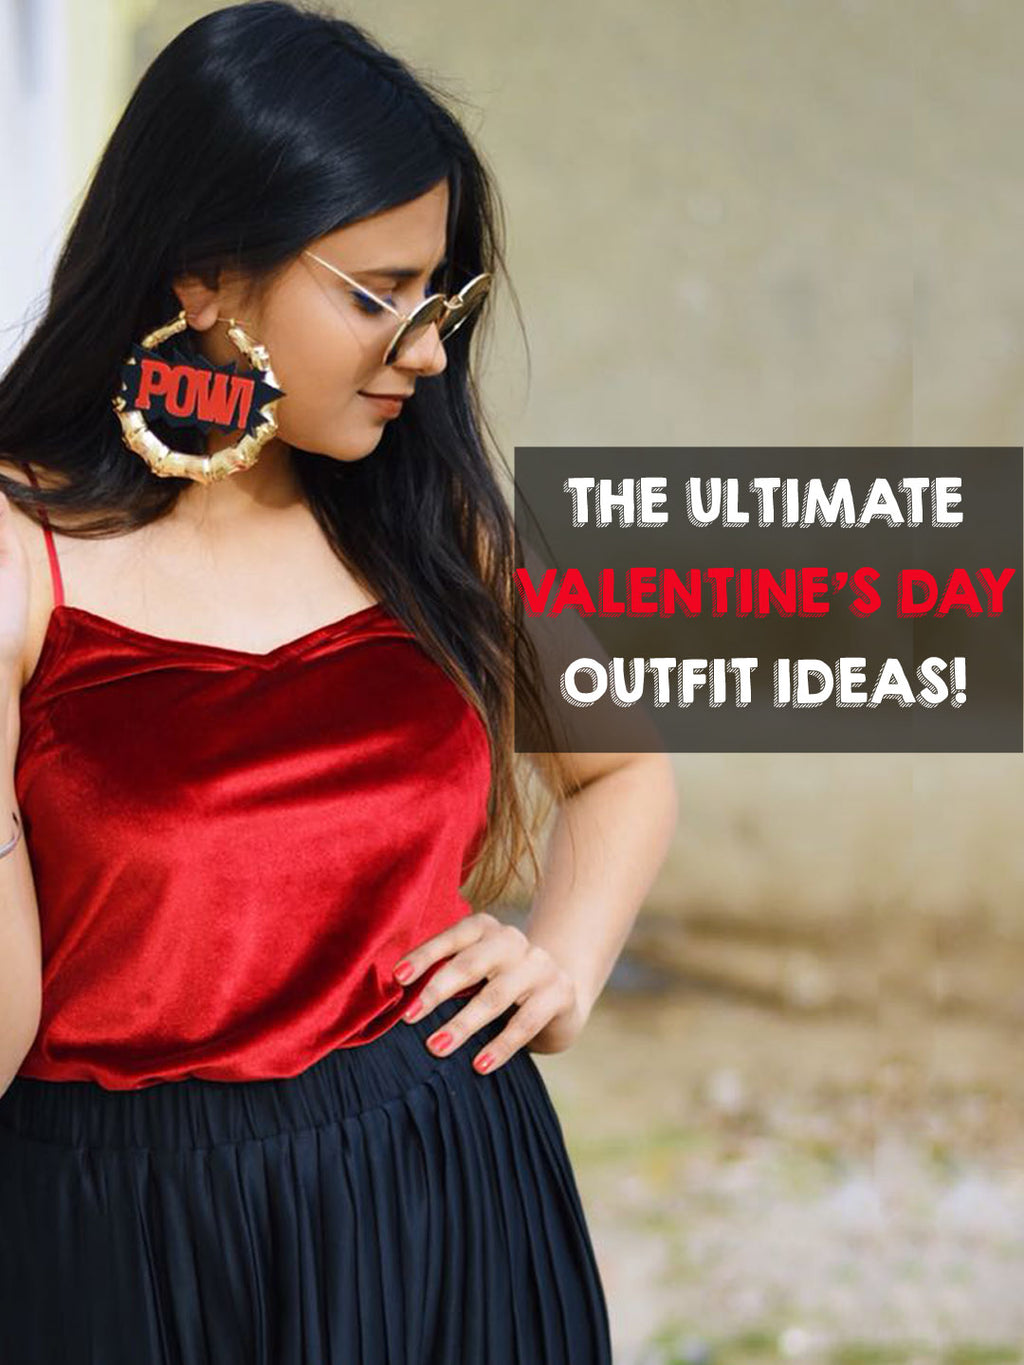 The Ultimate Valentine's Day Outfit Ideas!